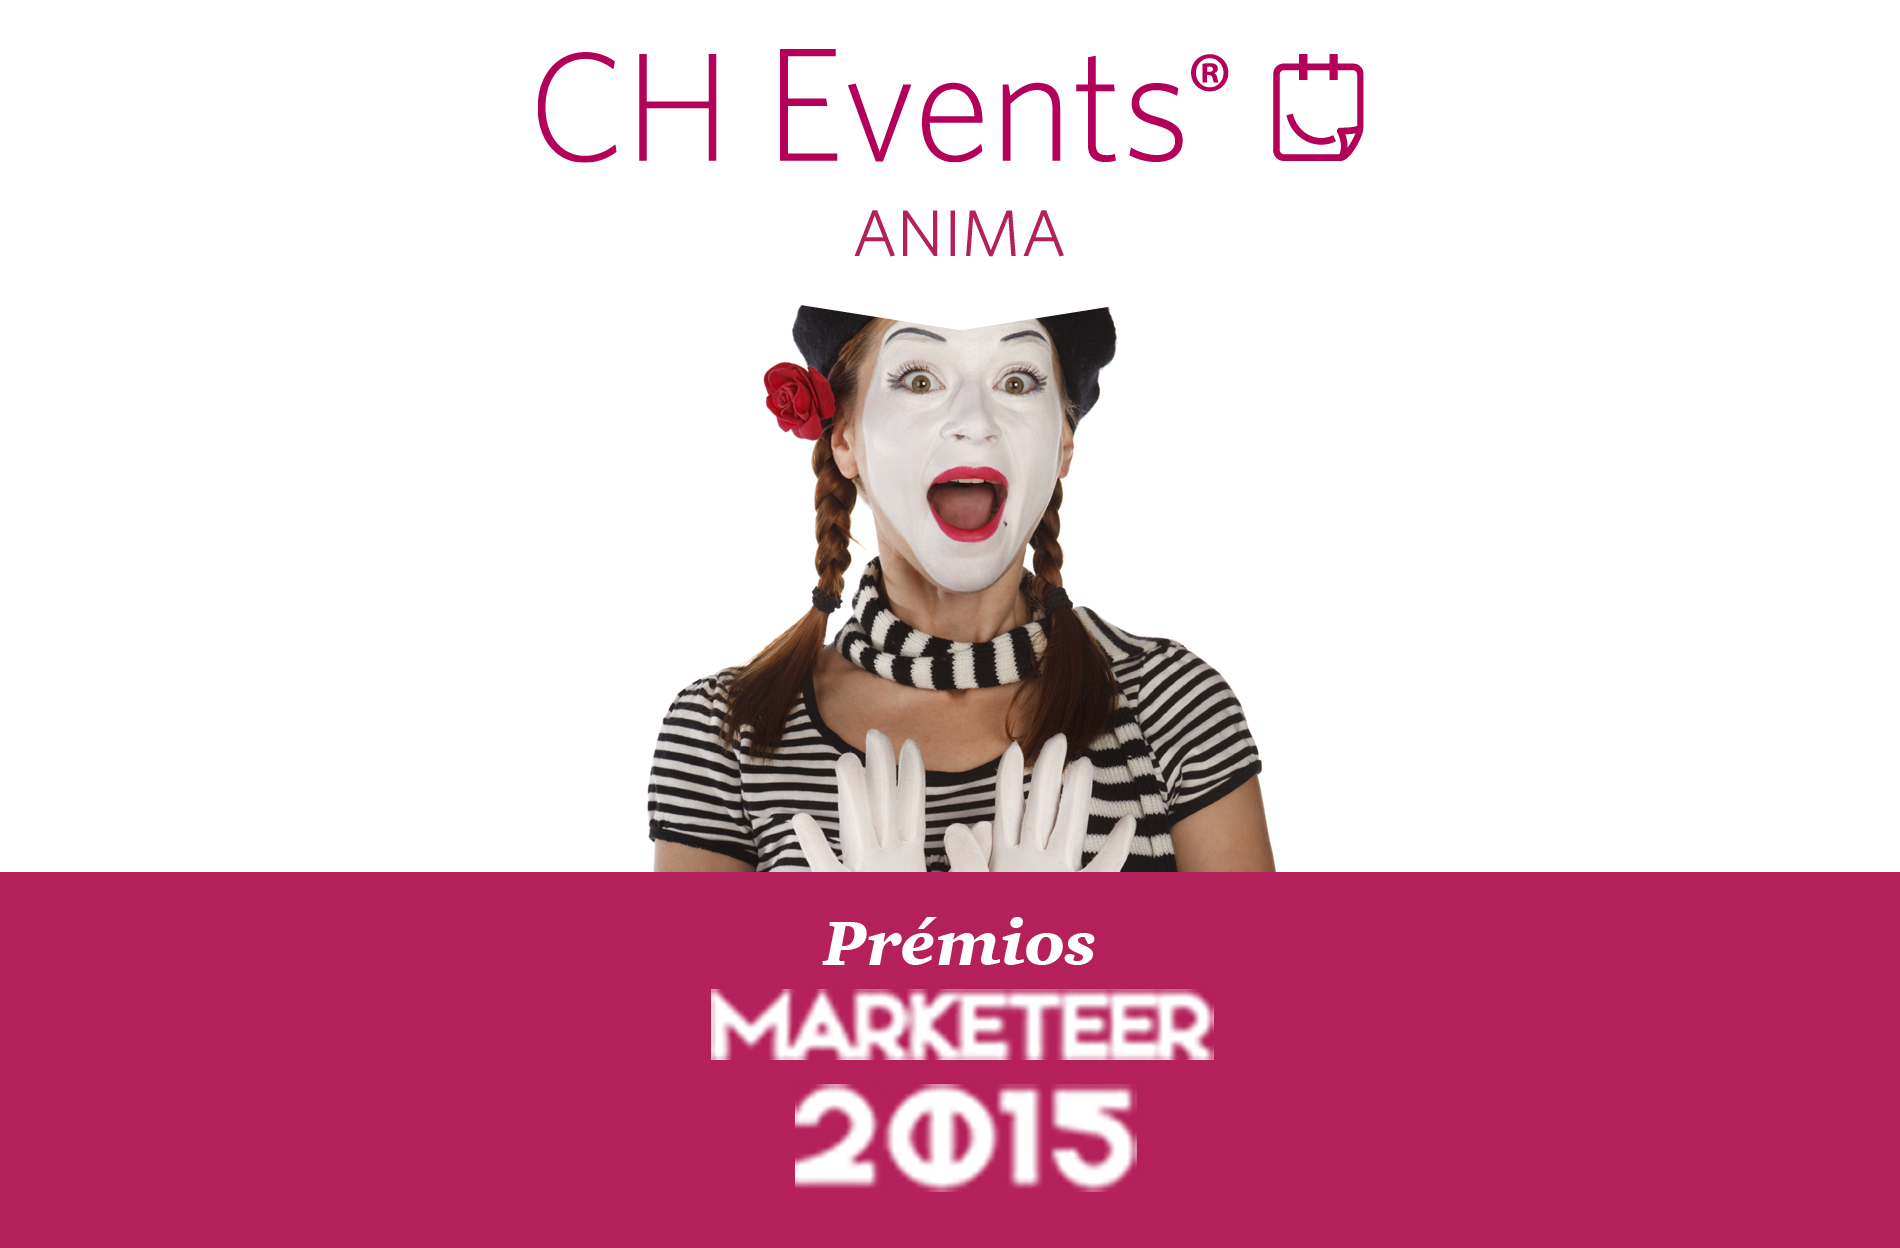 CH EVENTS anima Prémios Marketeer